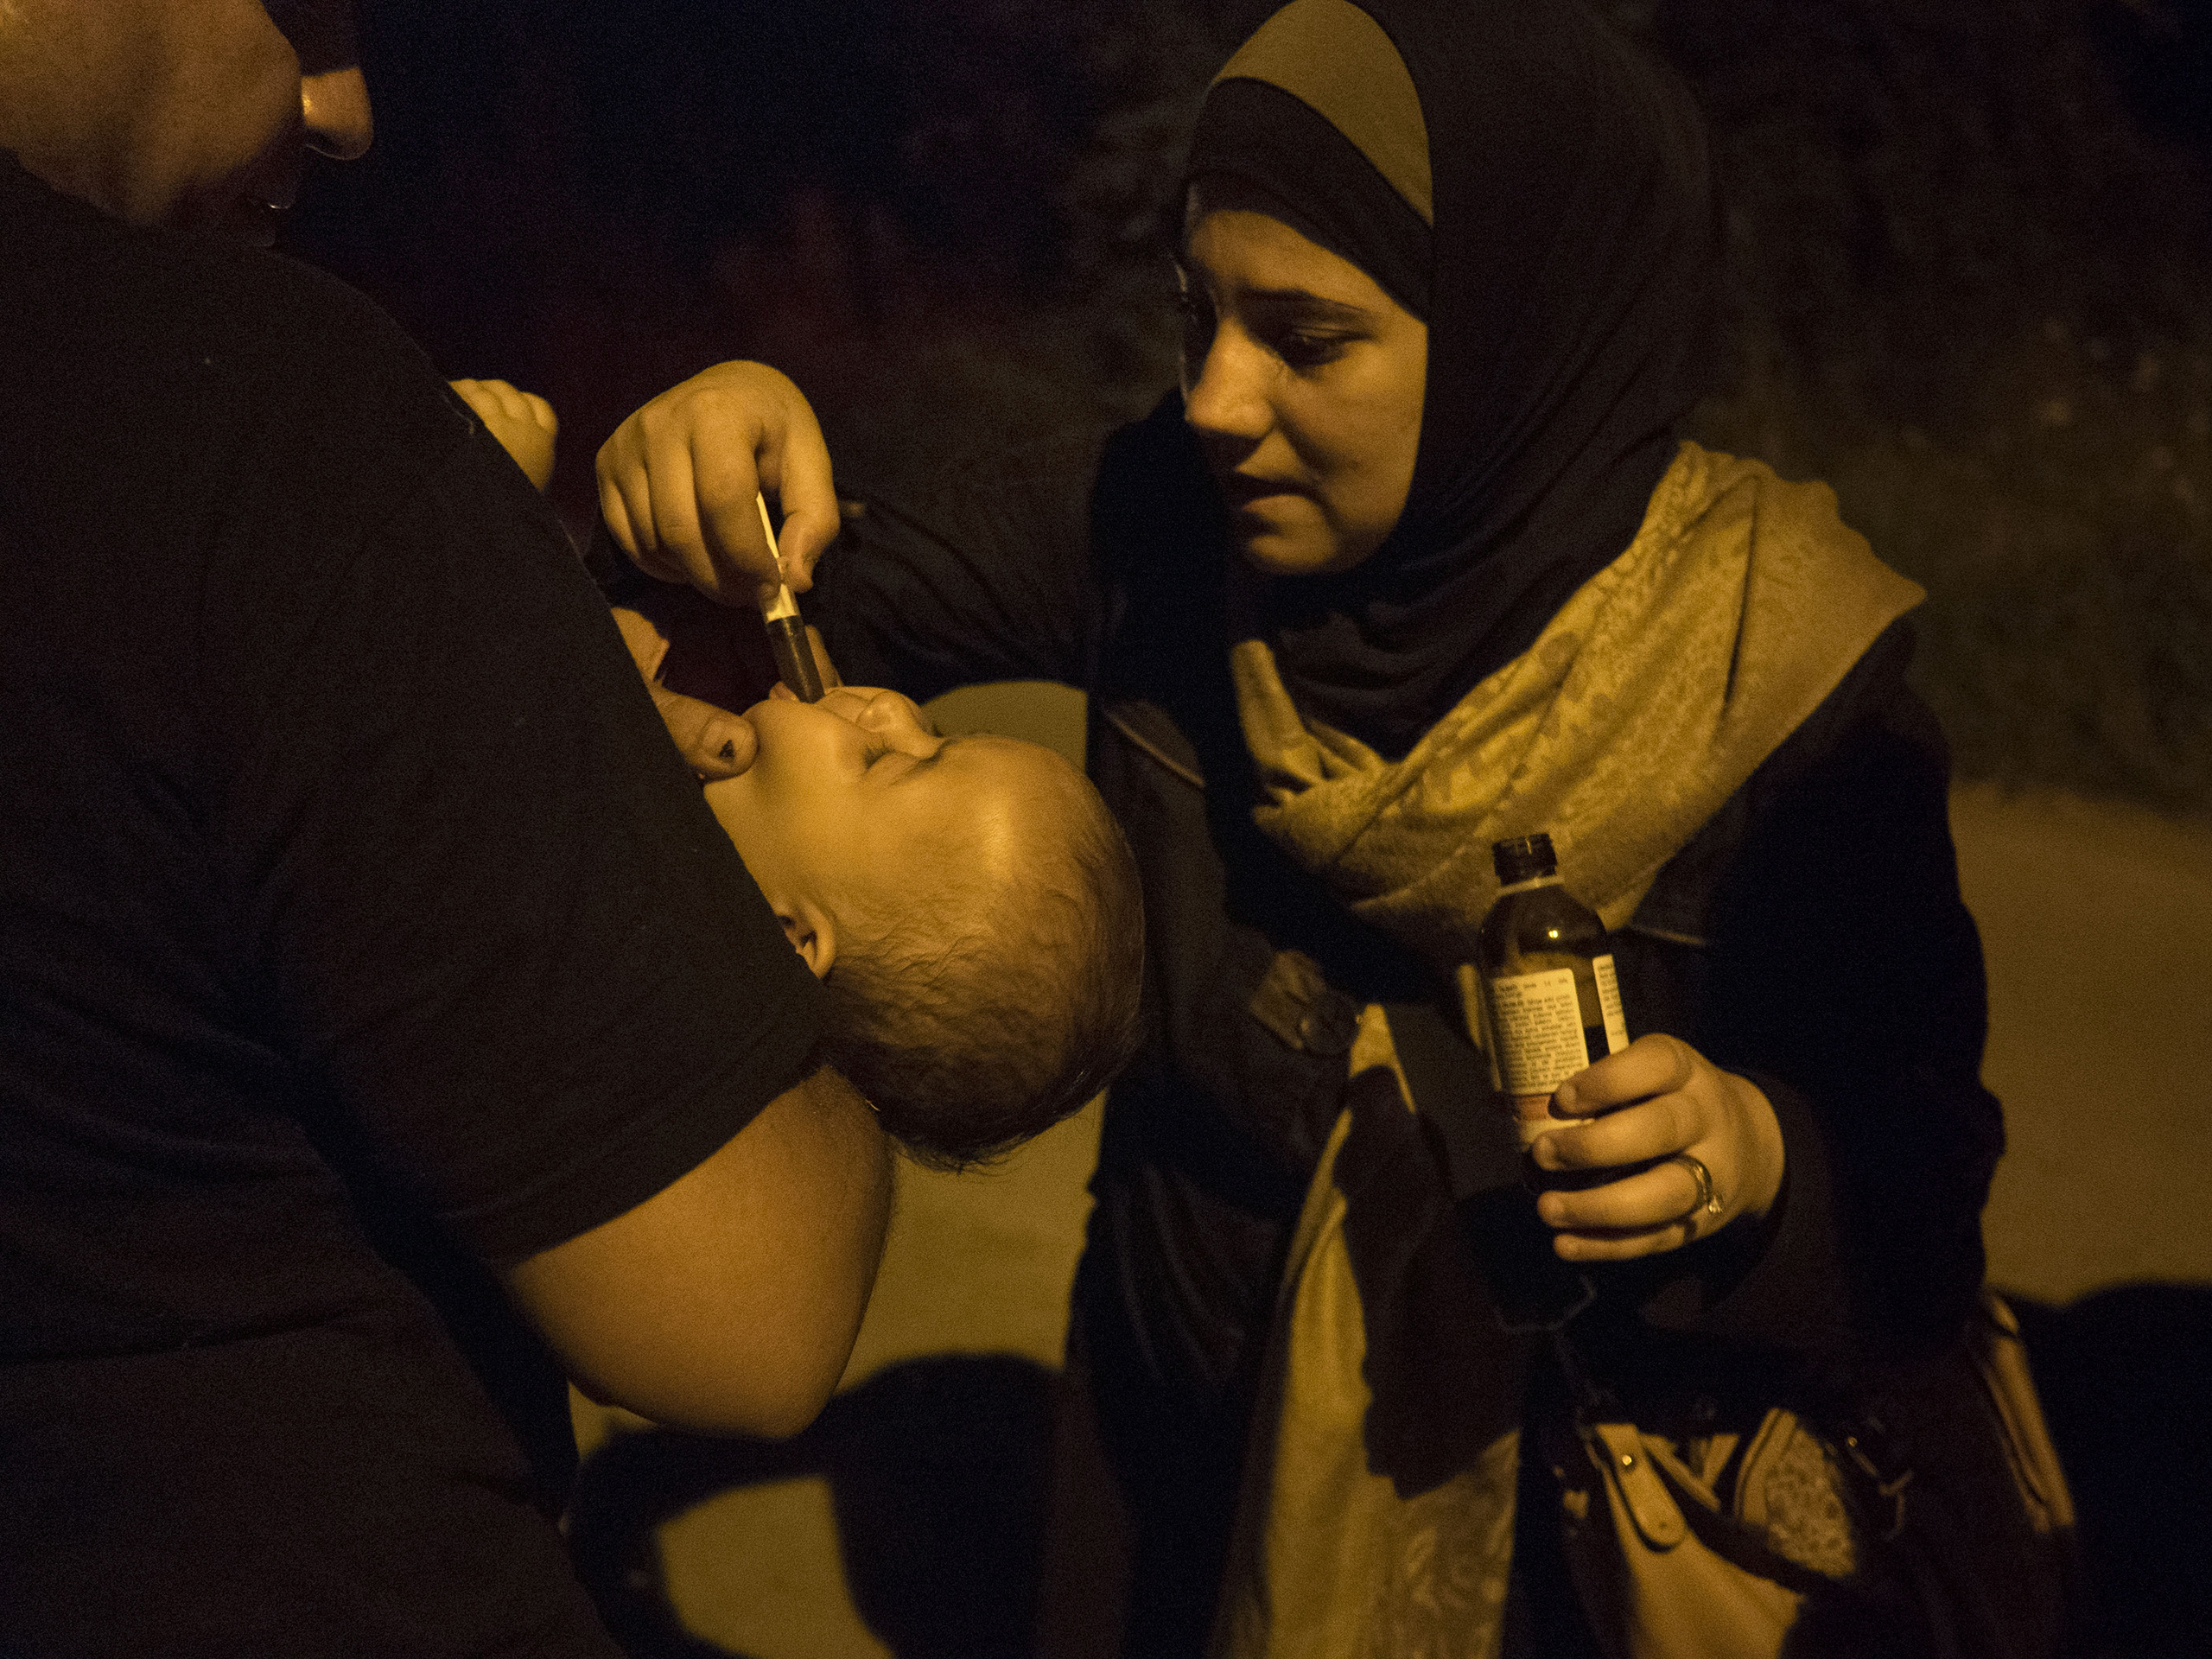 Horgos, Serbia. August 12, 2015.                                   Syrian families walk at night toward the border to attempt to cross it. A woman gives medicine to young children exhausted by days and weeks of walking.